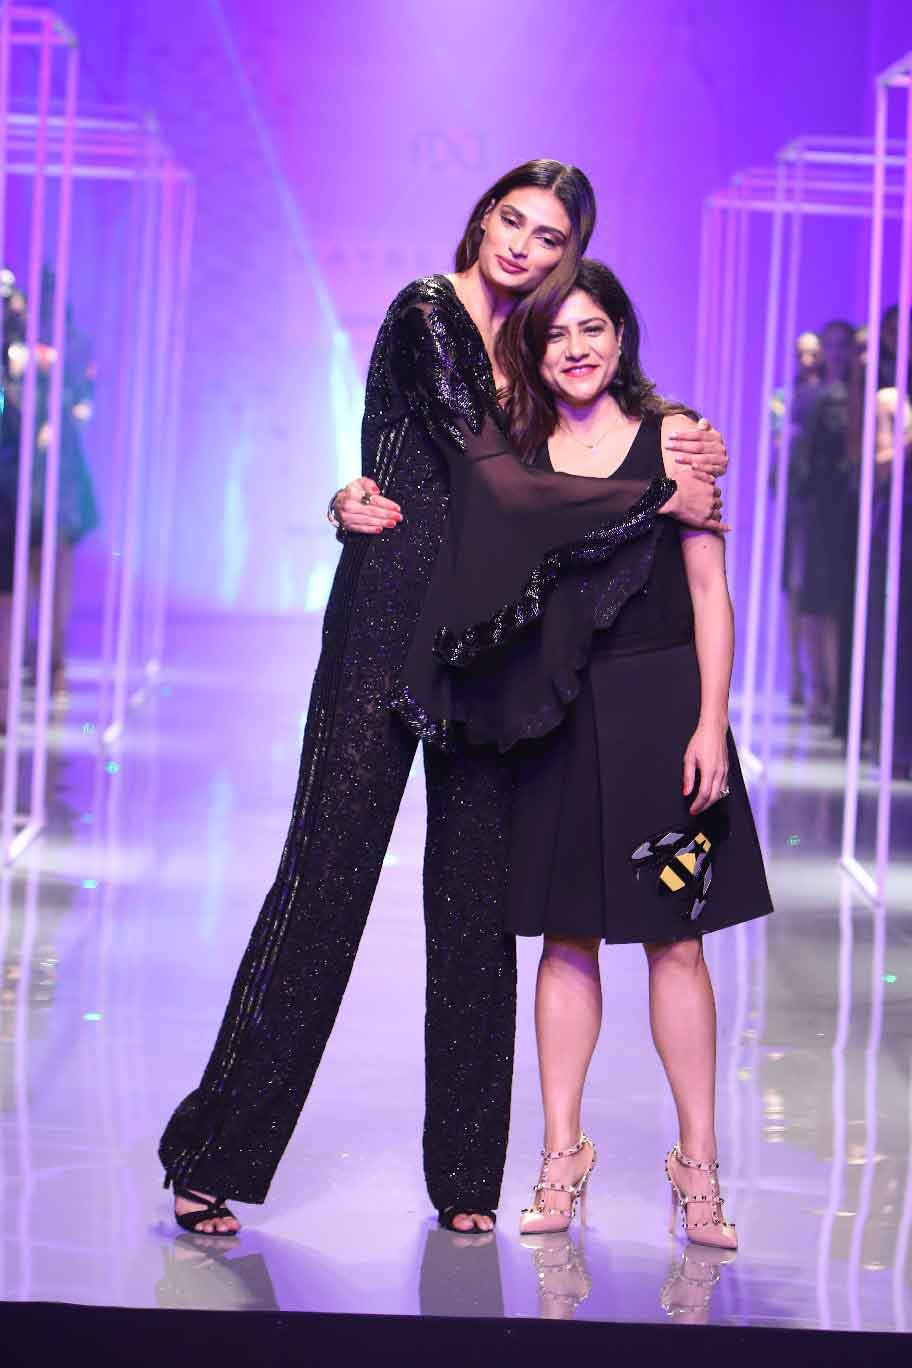 Athiya Shetty as showstopper for Maybelline New York presents Namrata Joshipura 2